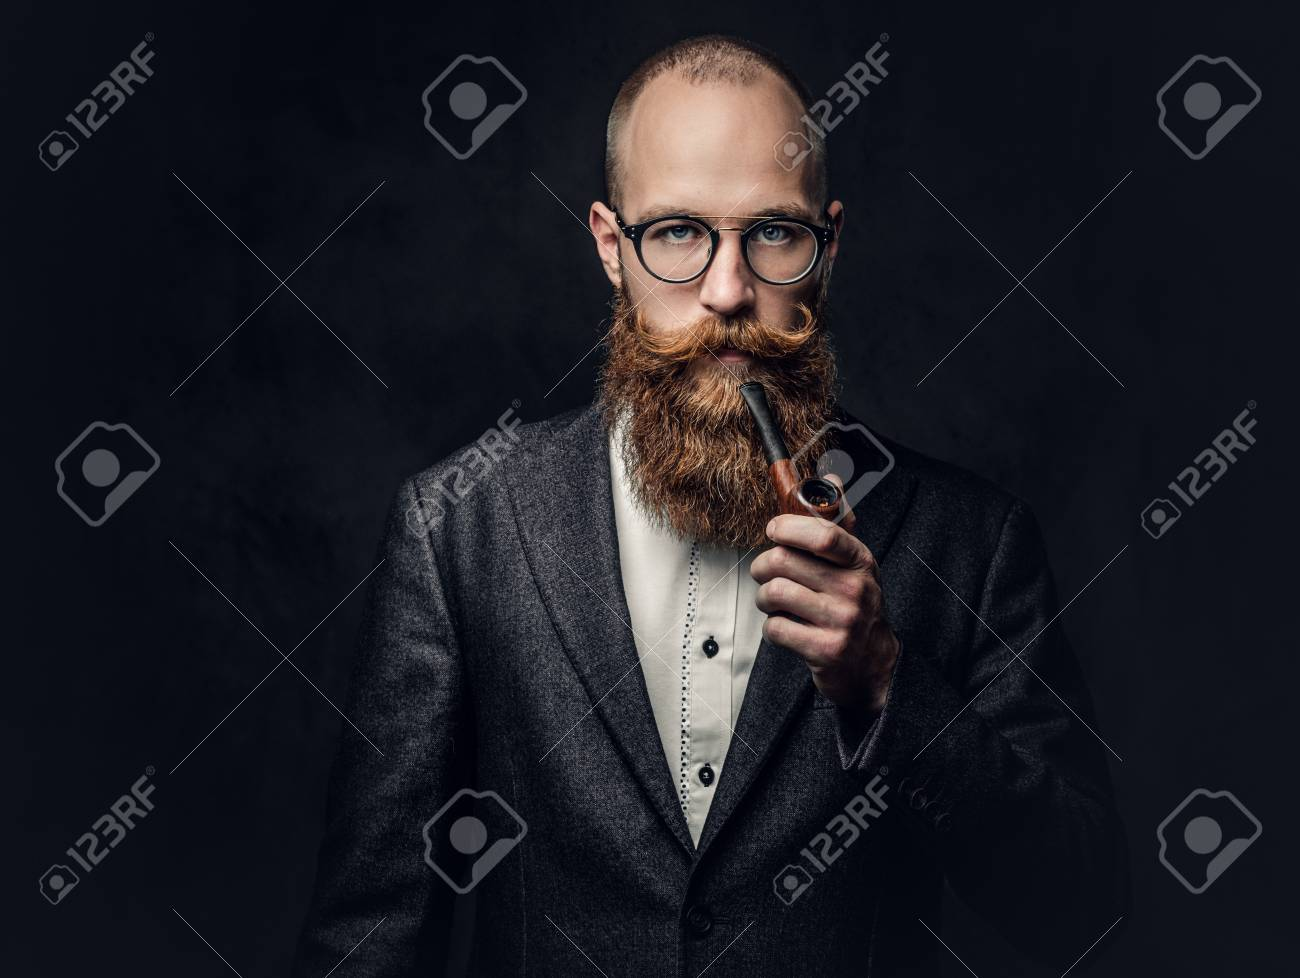 A man smoking pipe over grey background. - 90063467